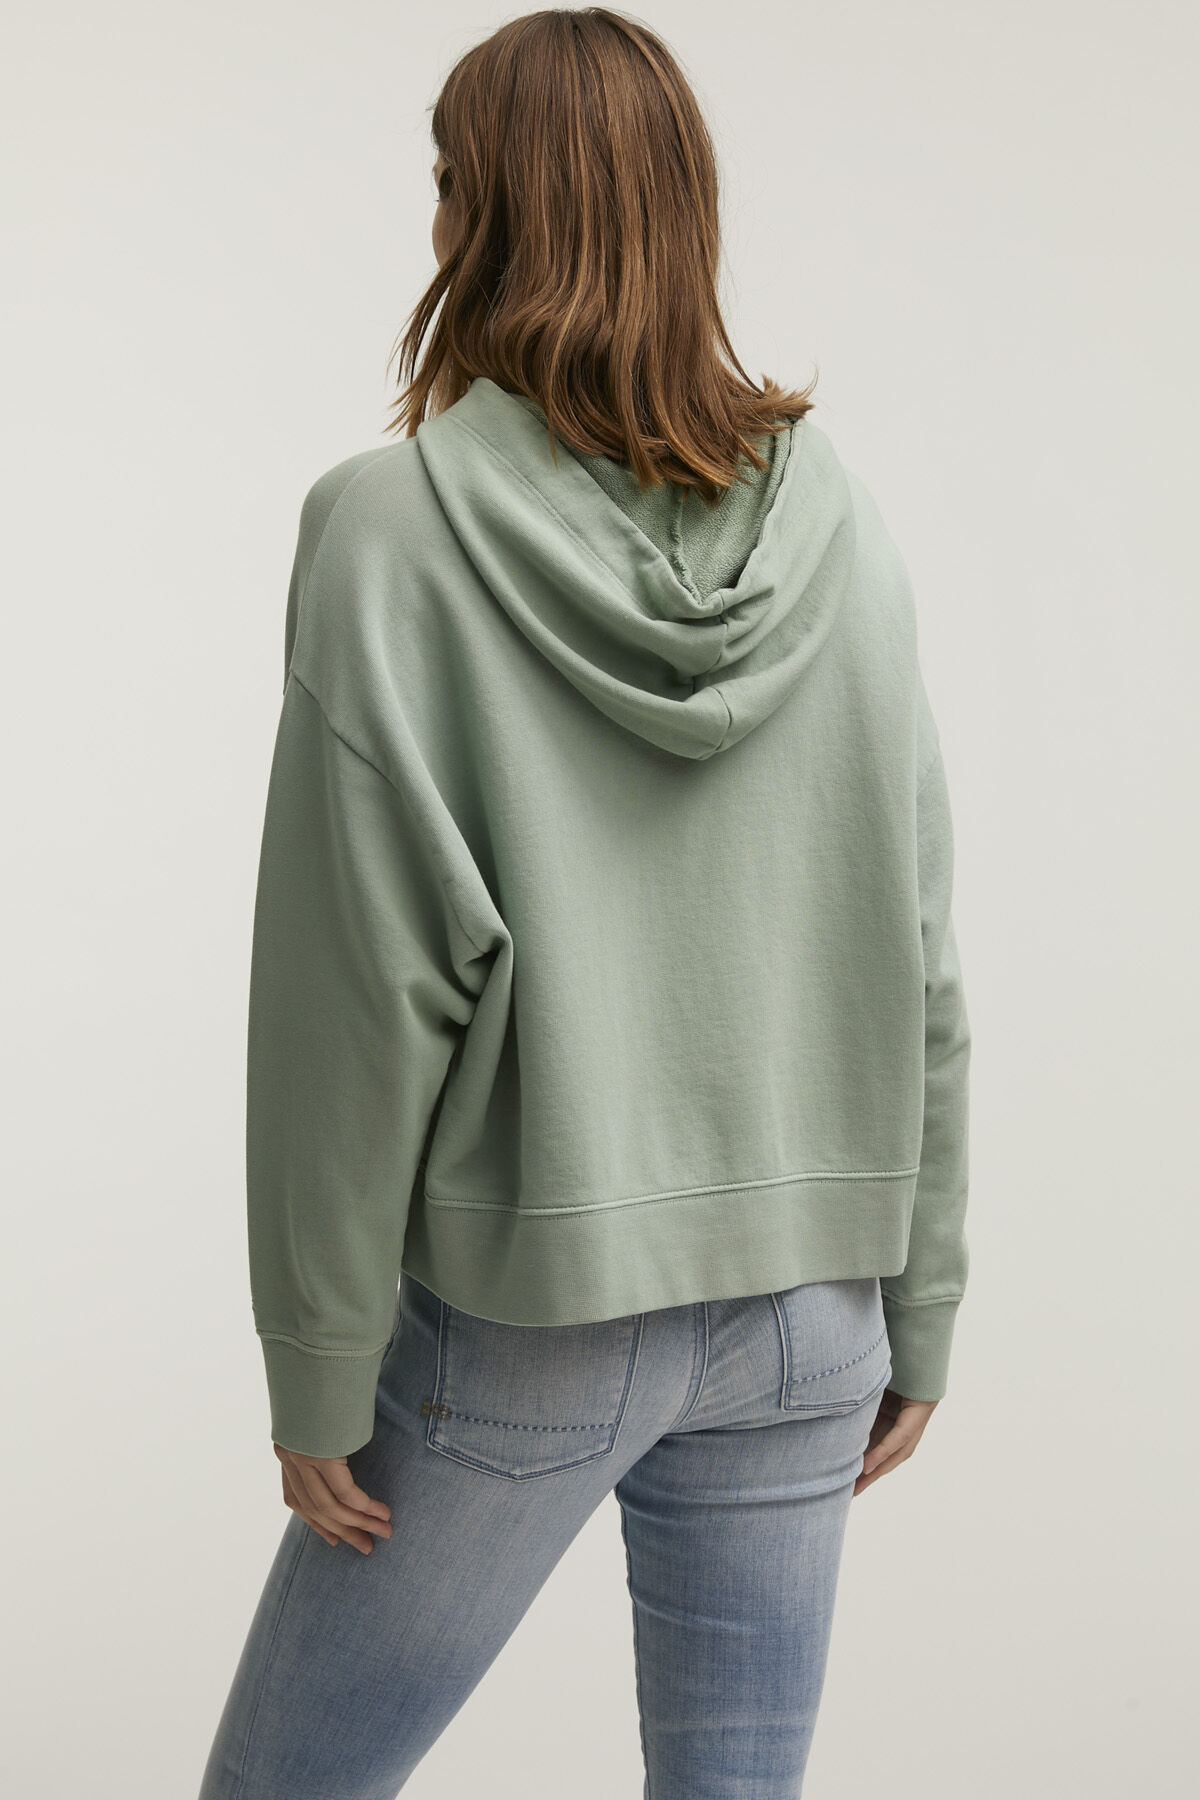 LOXFORD HOODY Loopback premium cotton - Relaxed Fit